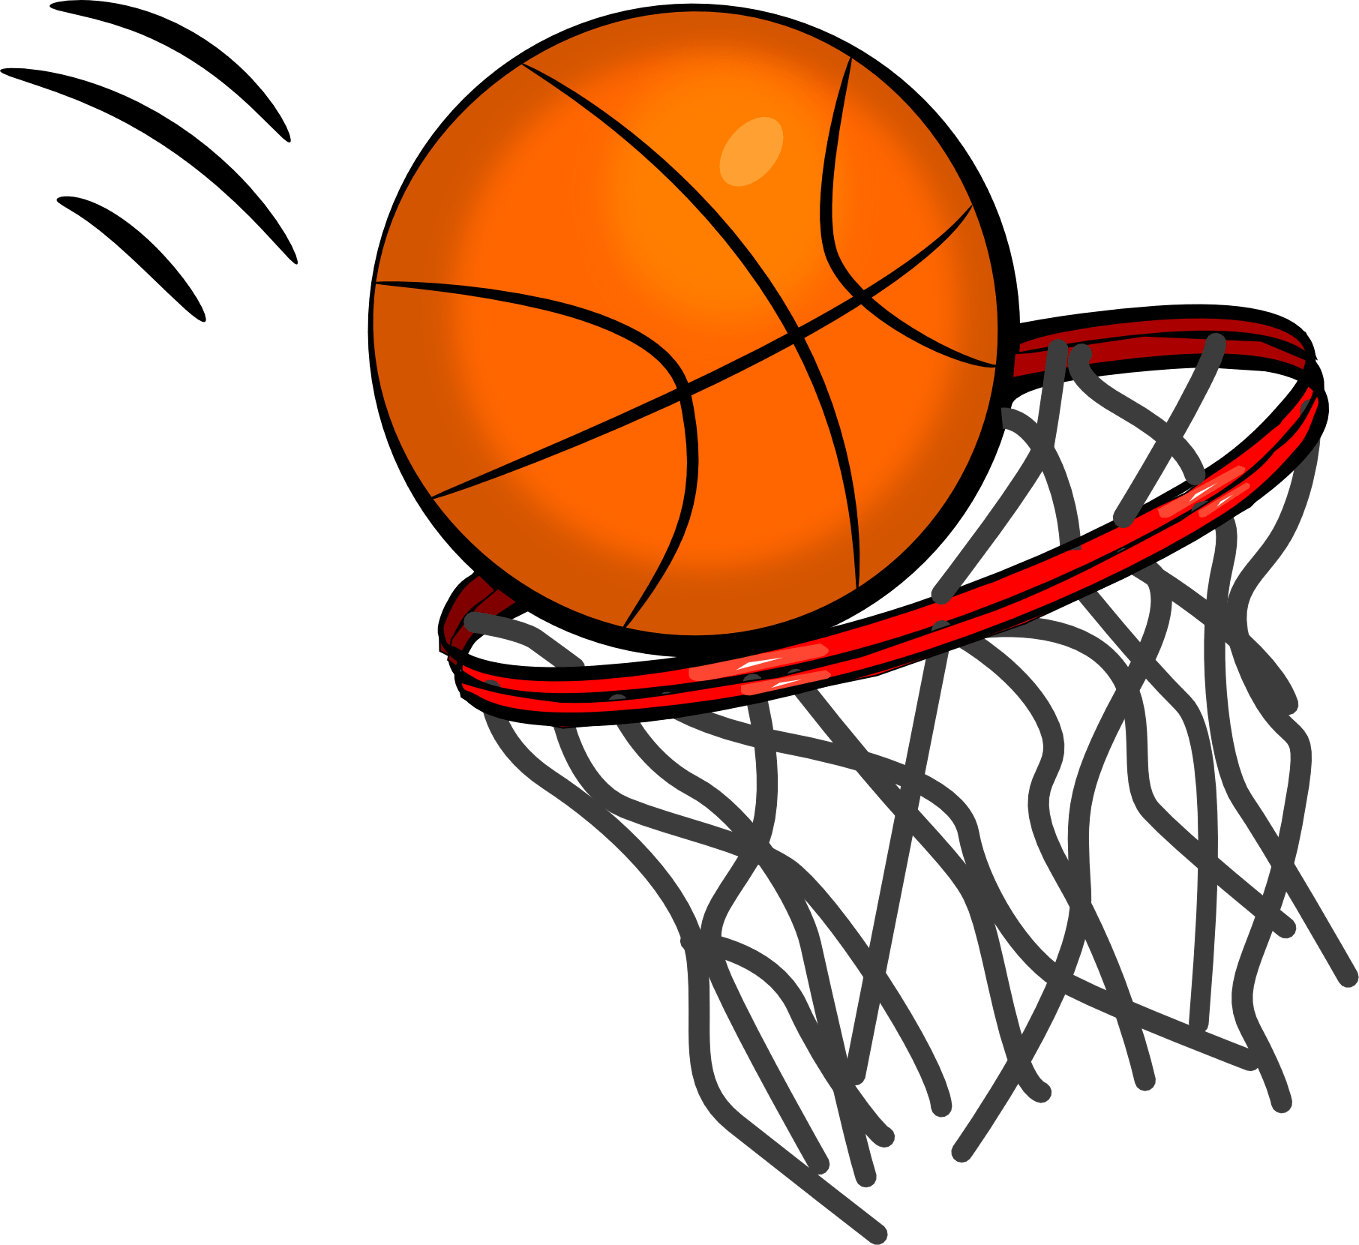 1359x1245 Basketball Ball Transparent Png